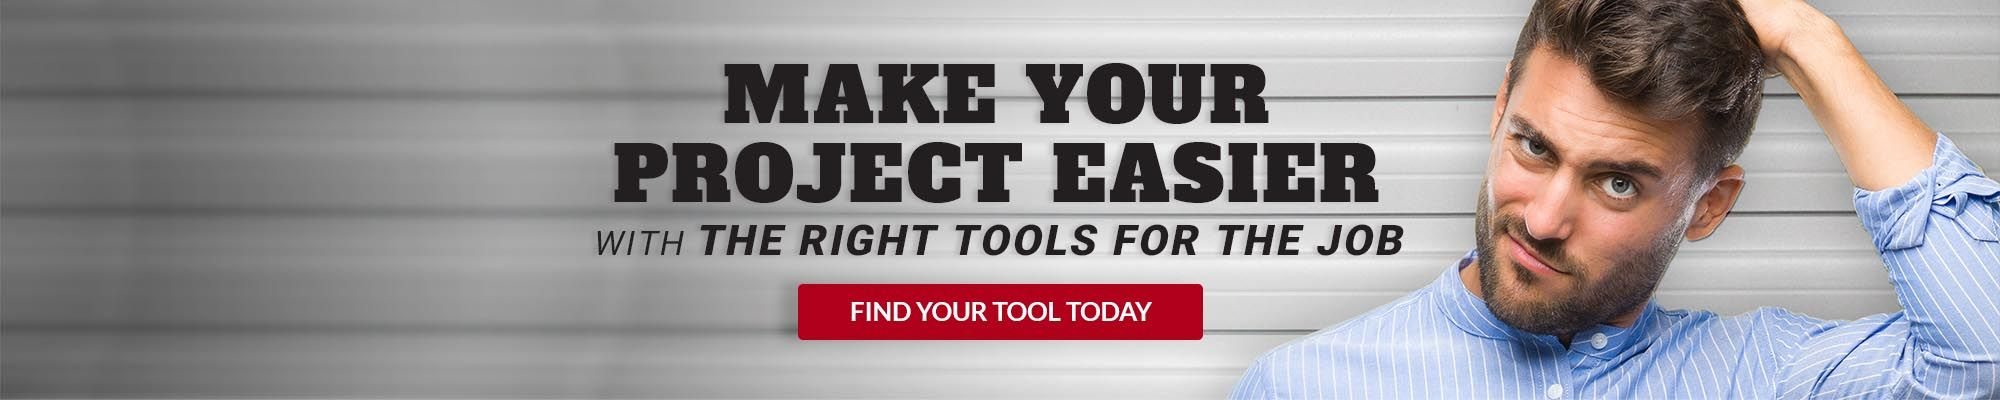 Find the Right Tools for the Job